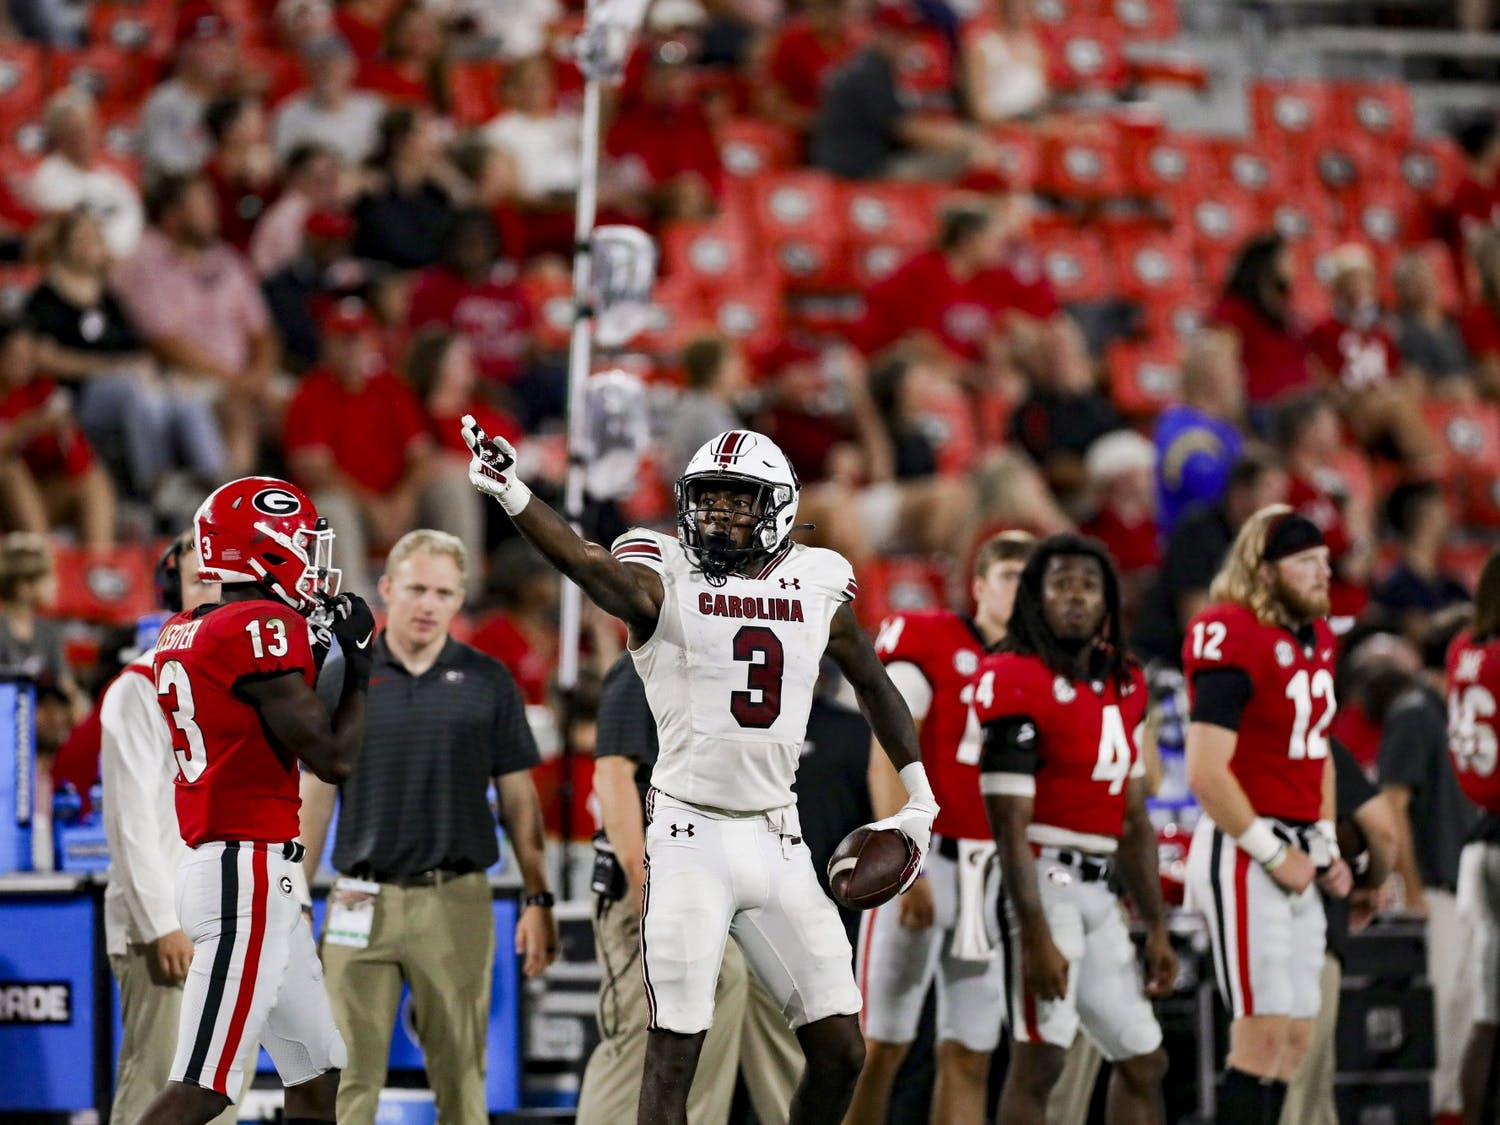 Senior wide receiver Jalen Brooks celebrates a one-handed catch in the fourth quarter of South Carolina's game against Georgia on Sept. 18, 2021.